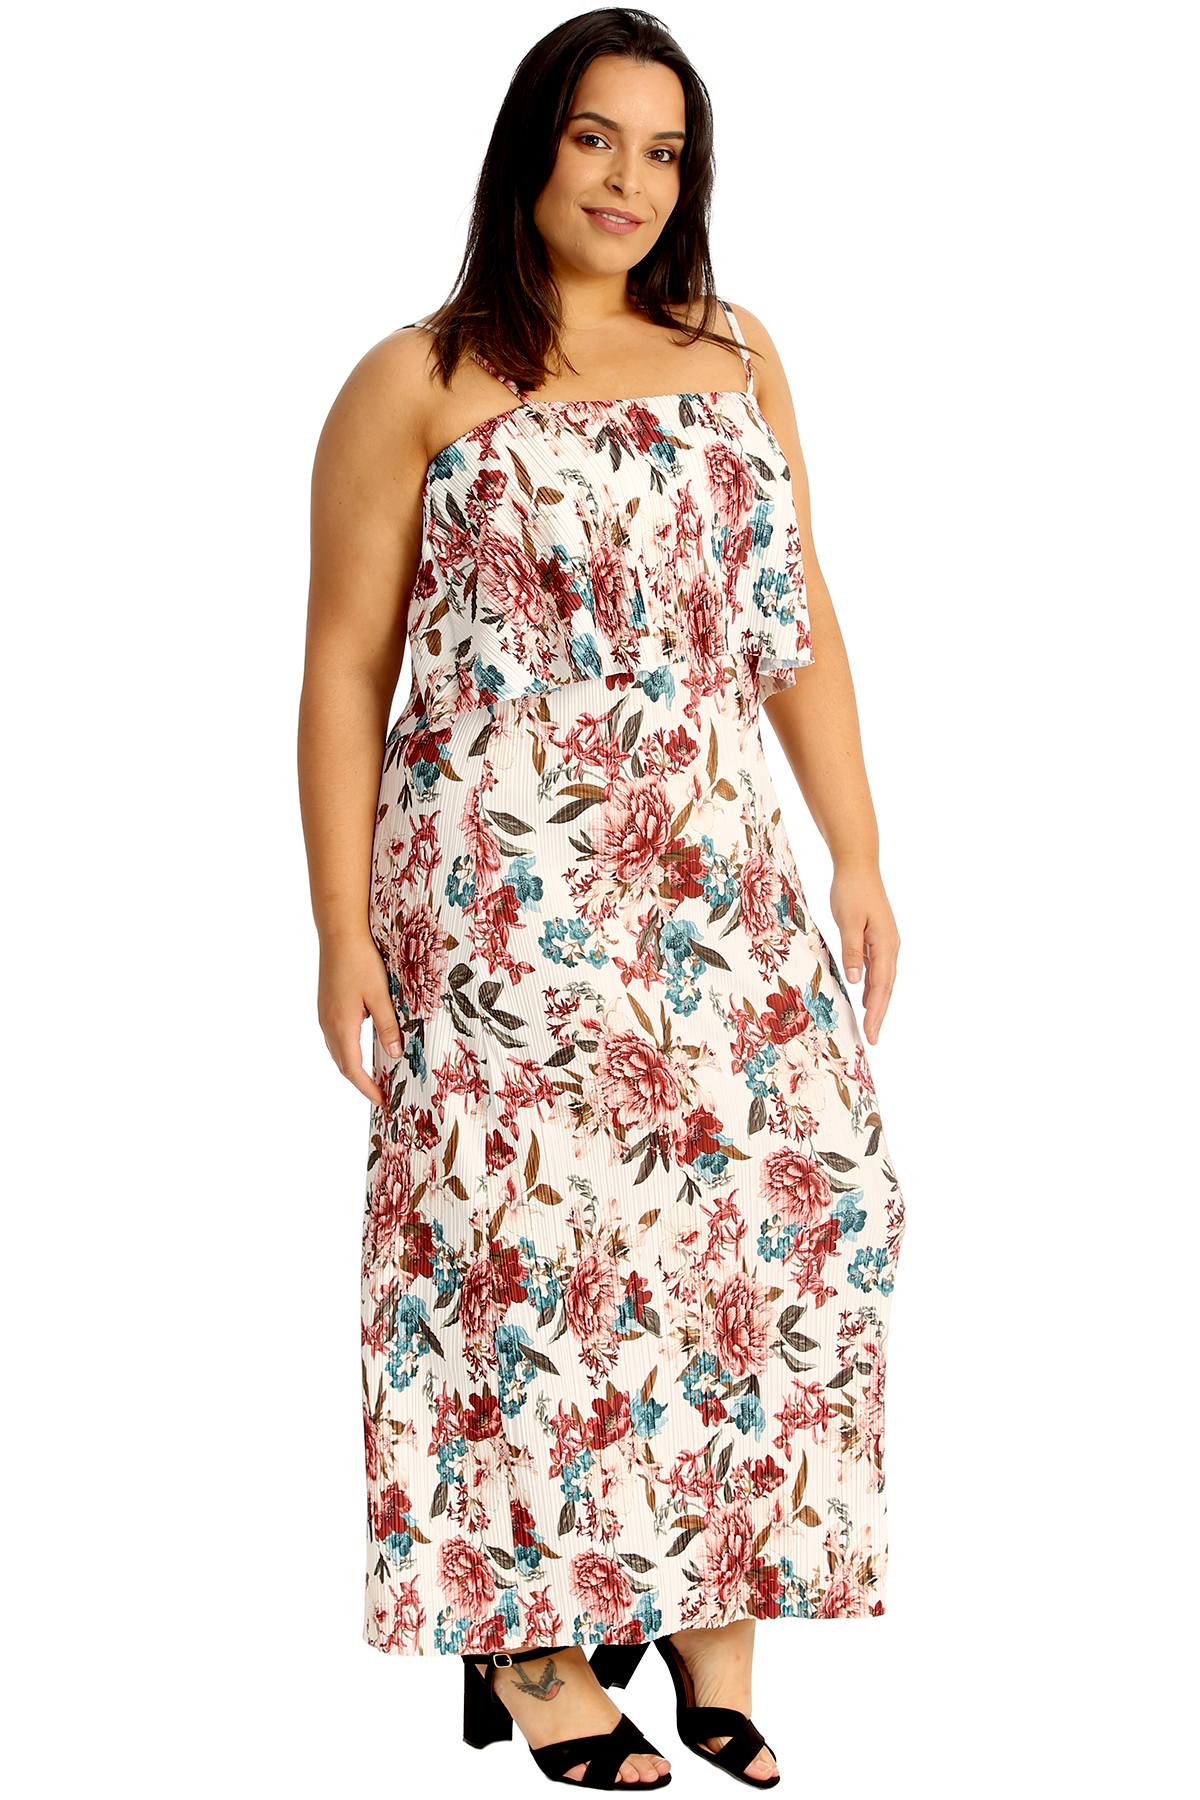 Details about New Women Plus Size Maxi Dress Ladies Floral Print Frill Top  Crinkle Pleated